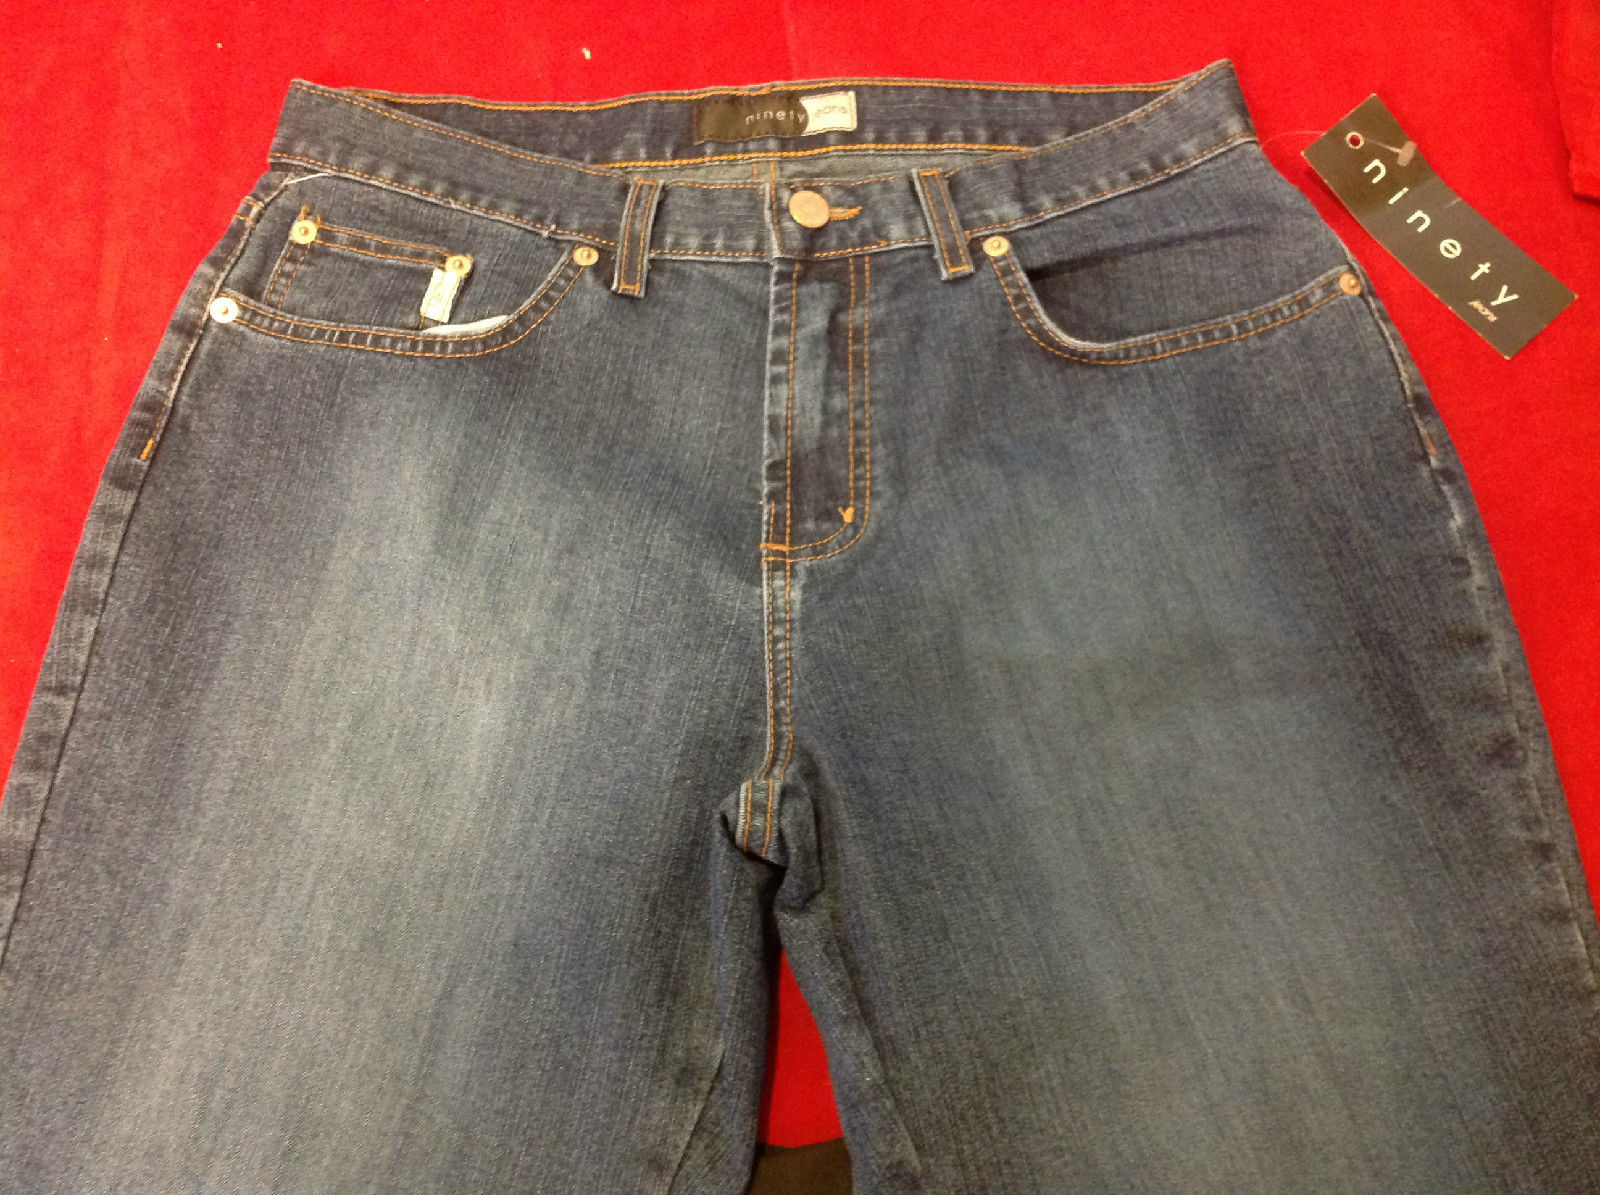 New Ninety Jeans Ladies Denim Jeans 32 inch waist.  Inseam 31.